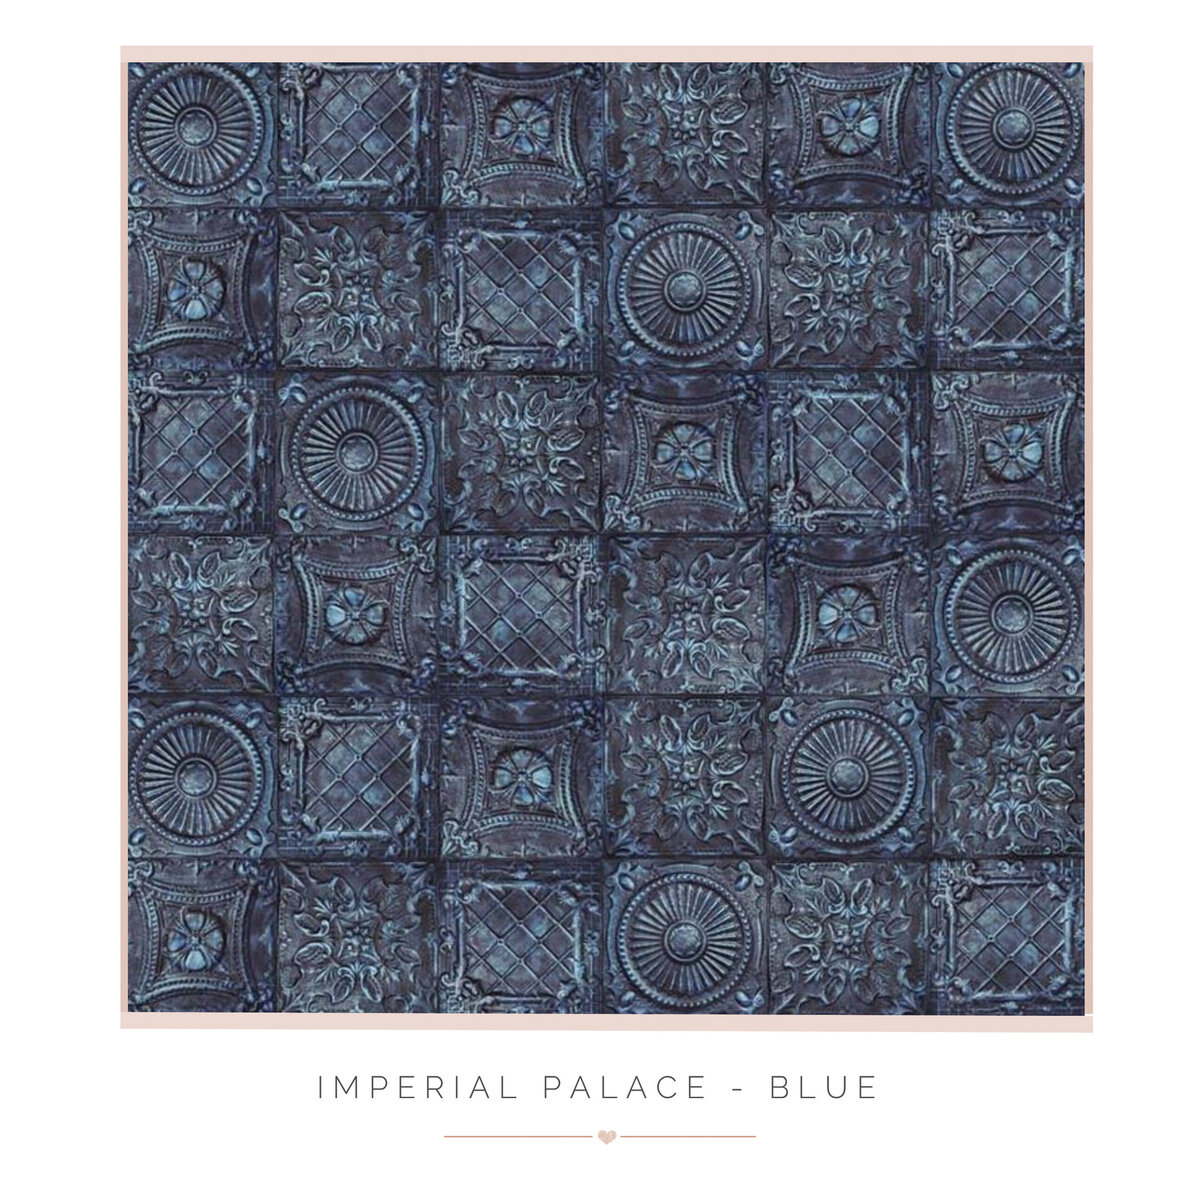 Imperial Palace - Blue